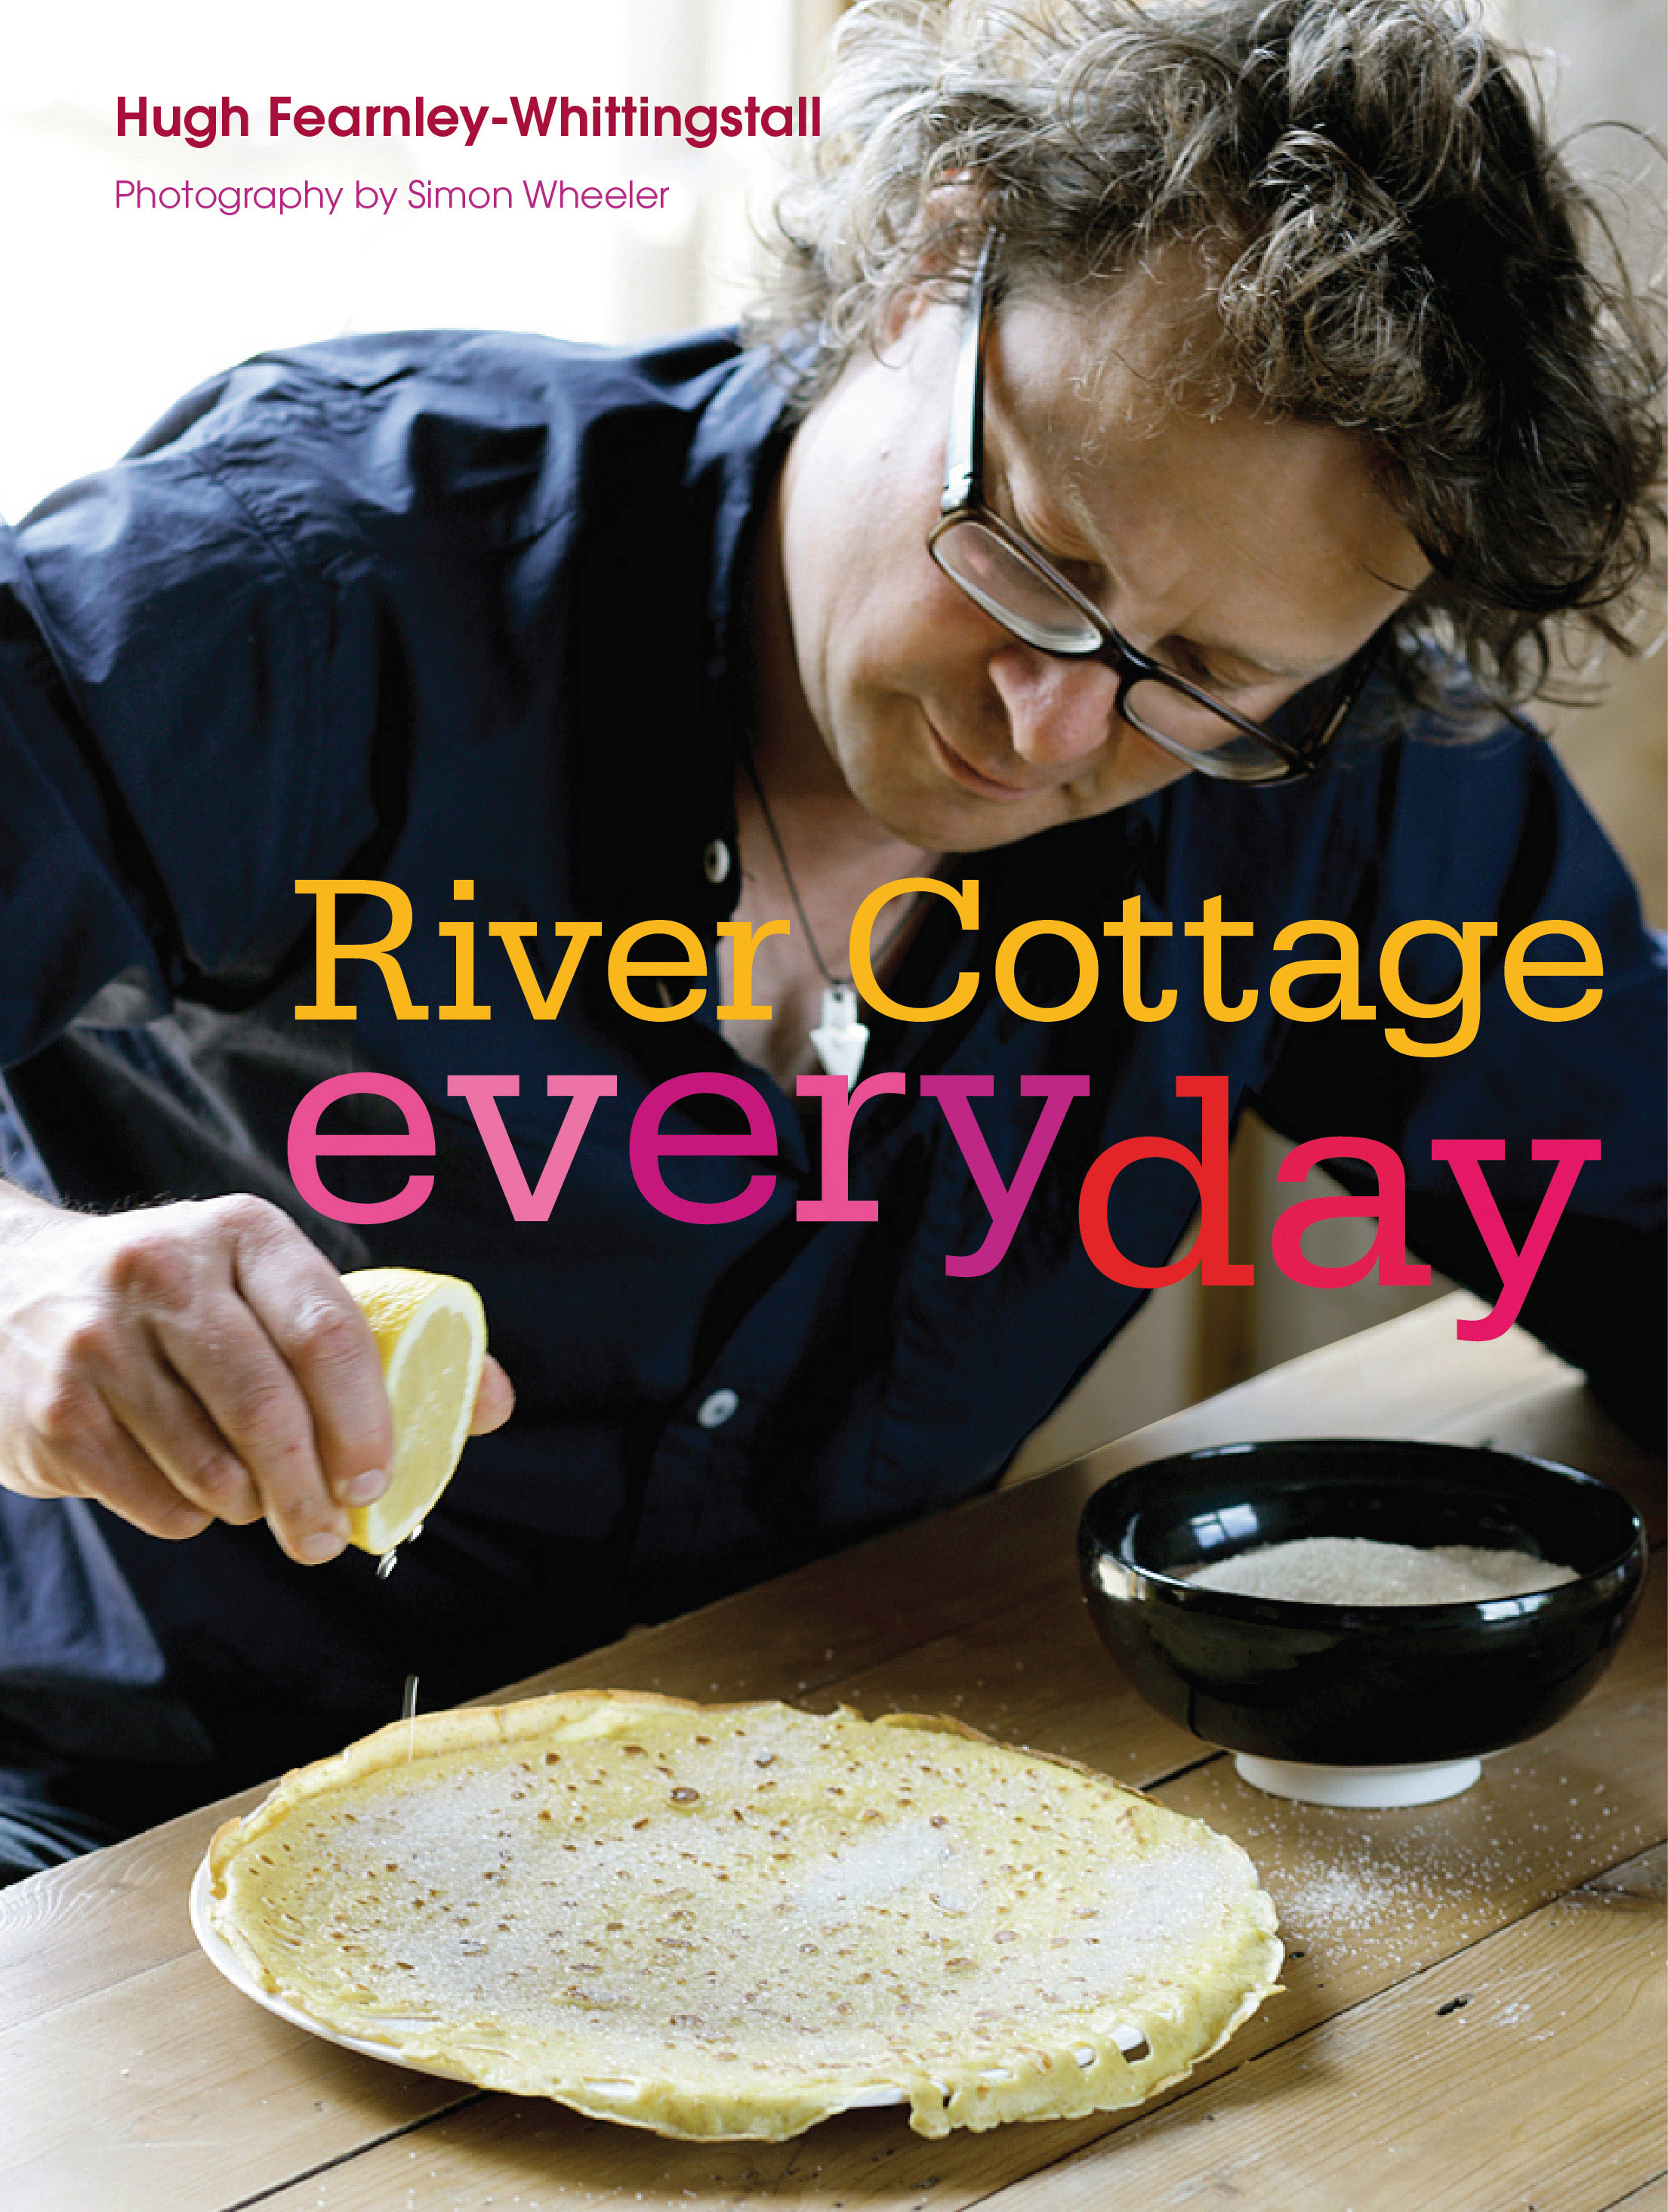 River Cottage Every Day by Hugh Fearnley-Whittingstall, ISBN: 9780747598404